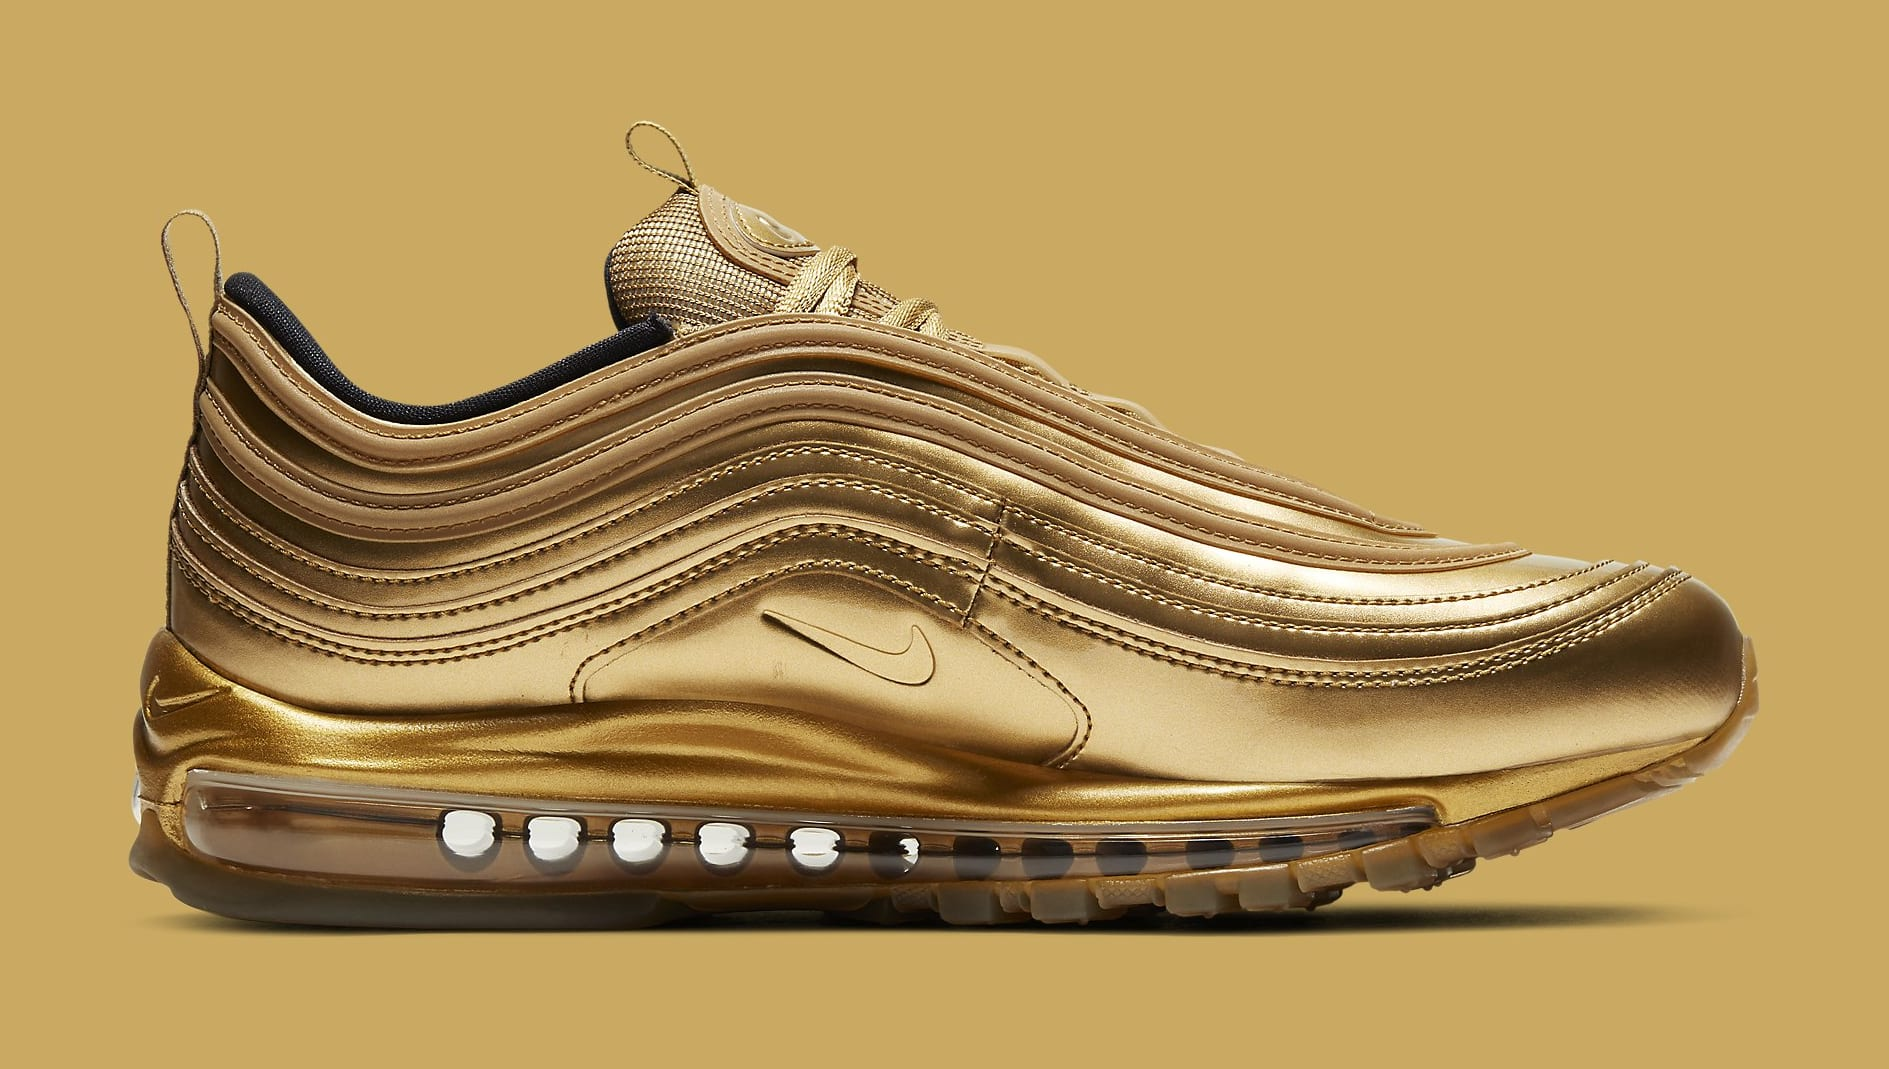 fiabilidad Irregularidades Corchete  Nike Air Max 97 'Gold' Release Date CT4556-700 | Sole Collector